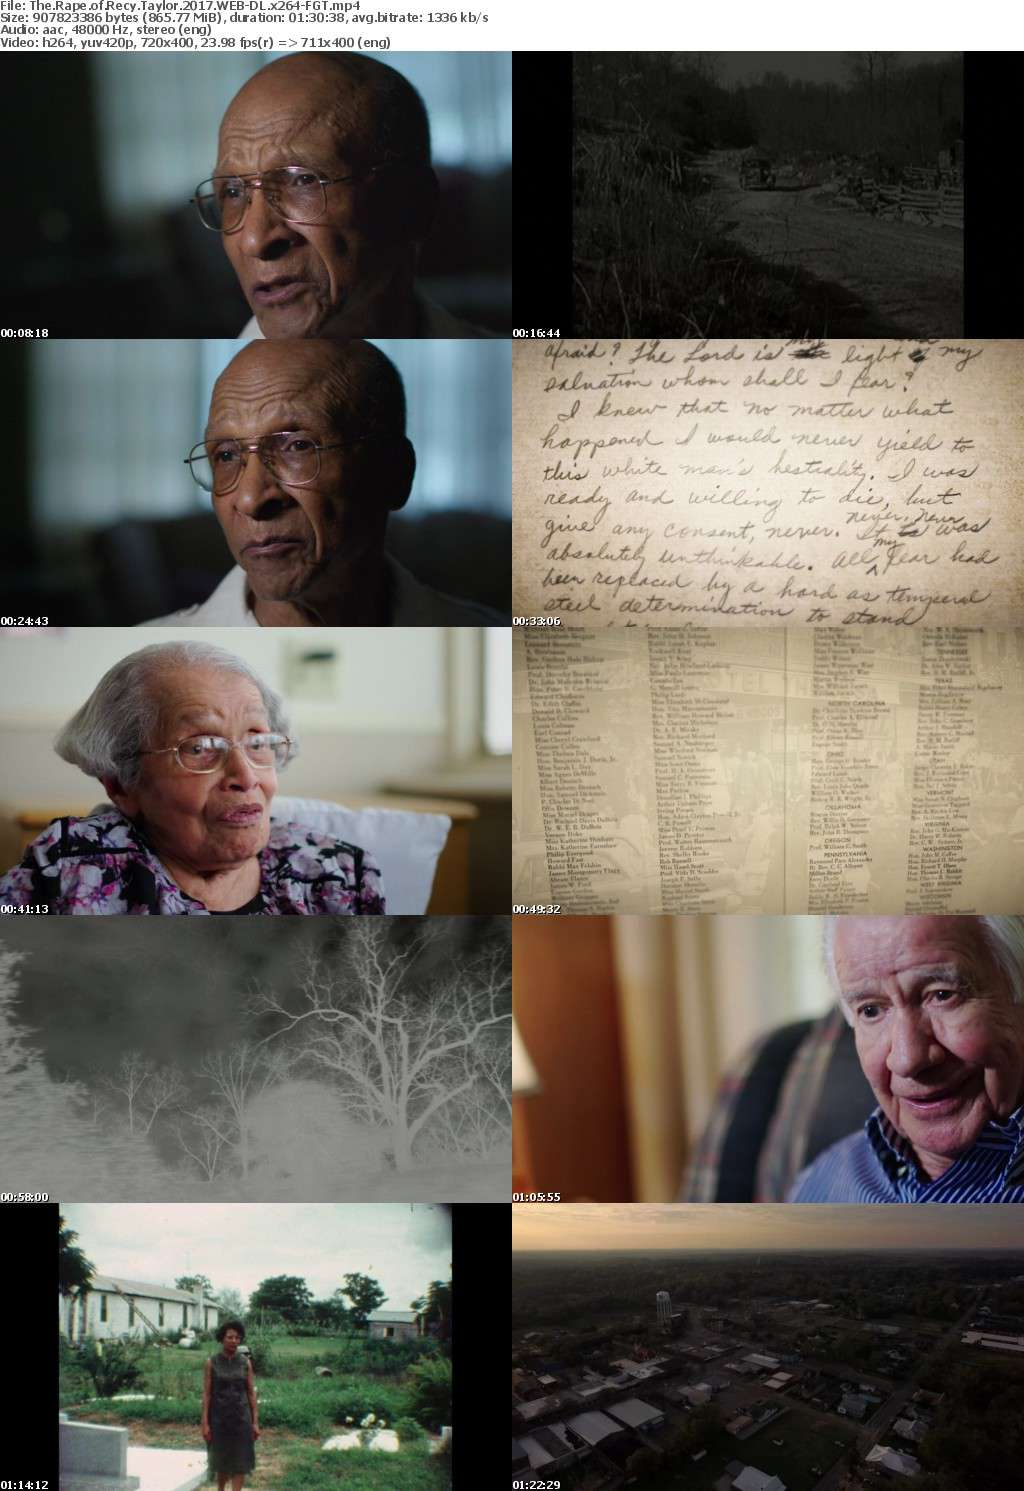 The Rape of Recy Taylor 2017 WEB-DL x264-FGT